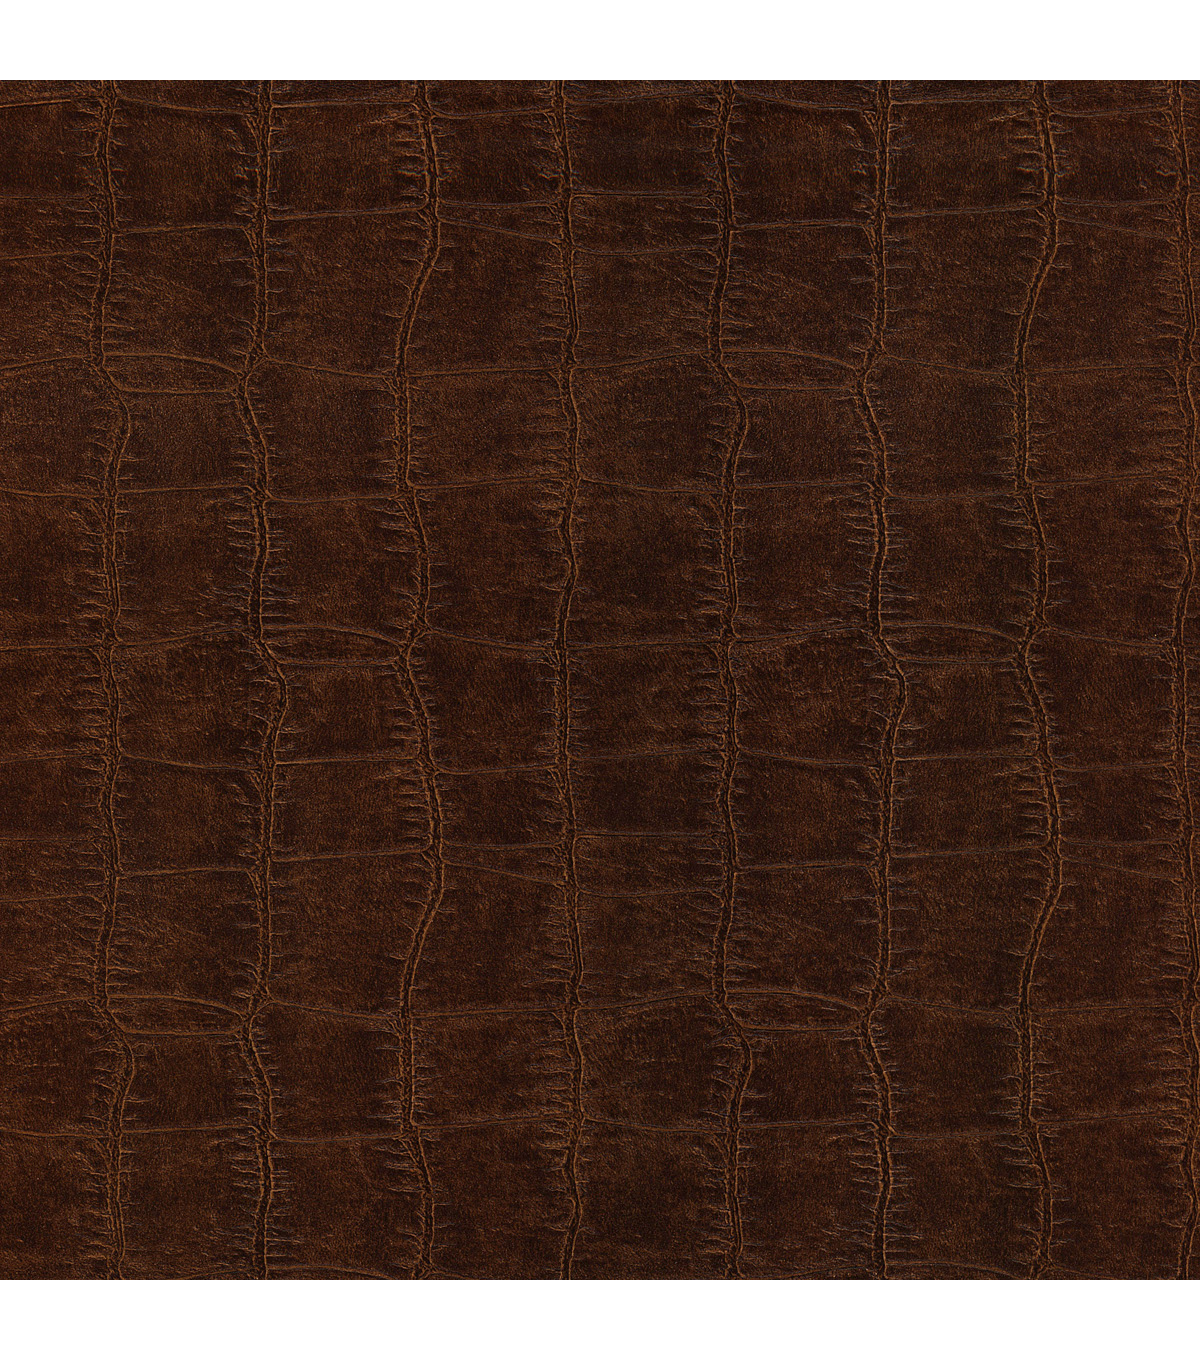 Cairo Brown Leather Wallpaper Sample